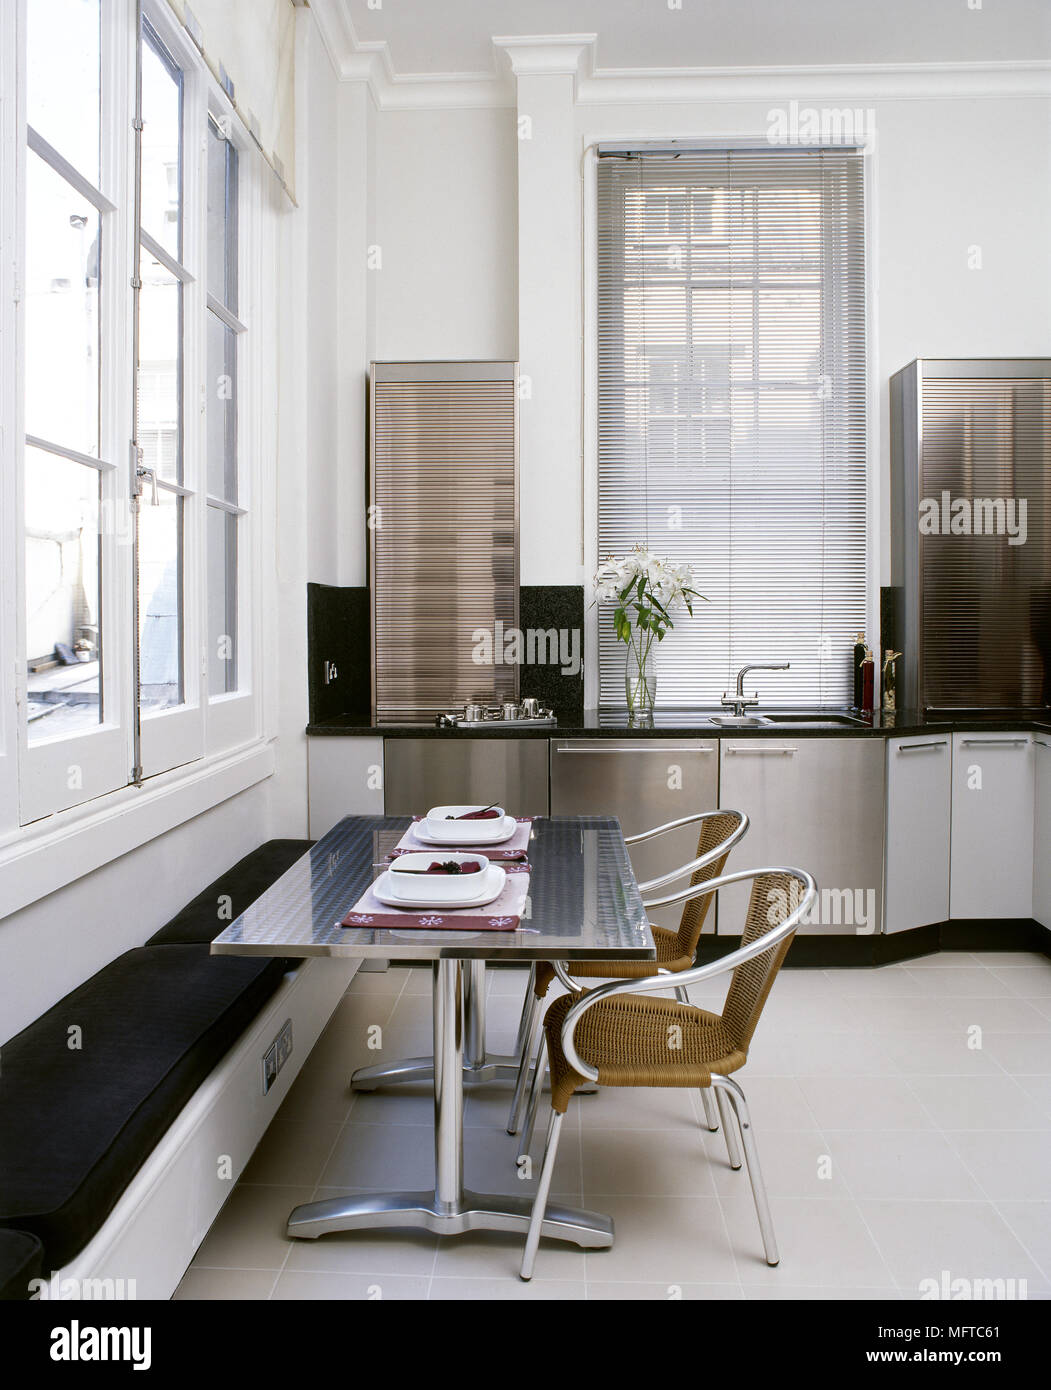 Modern eat in kitchen with stainless steel cabinets dining table with banquette seating tile floor and tall windows